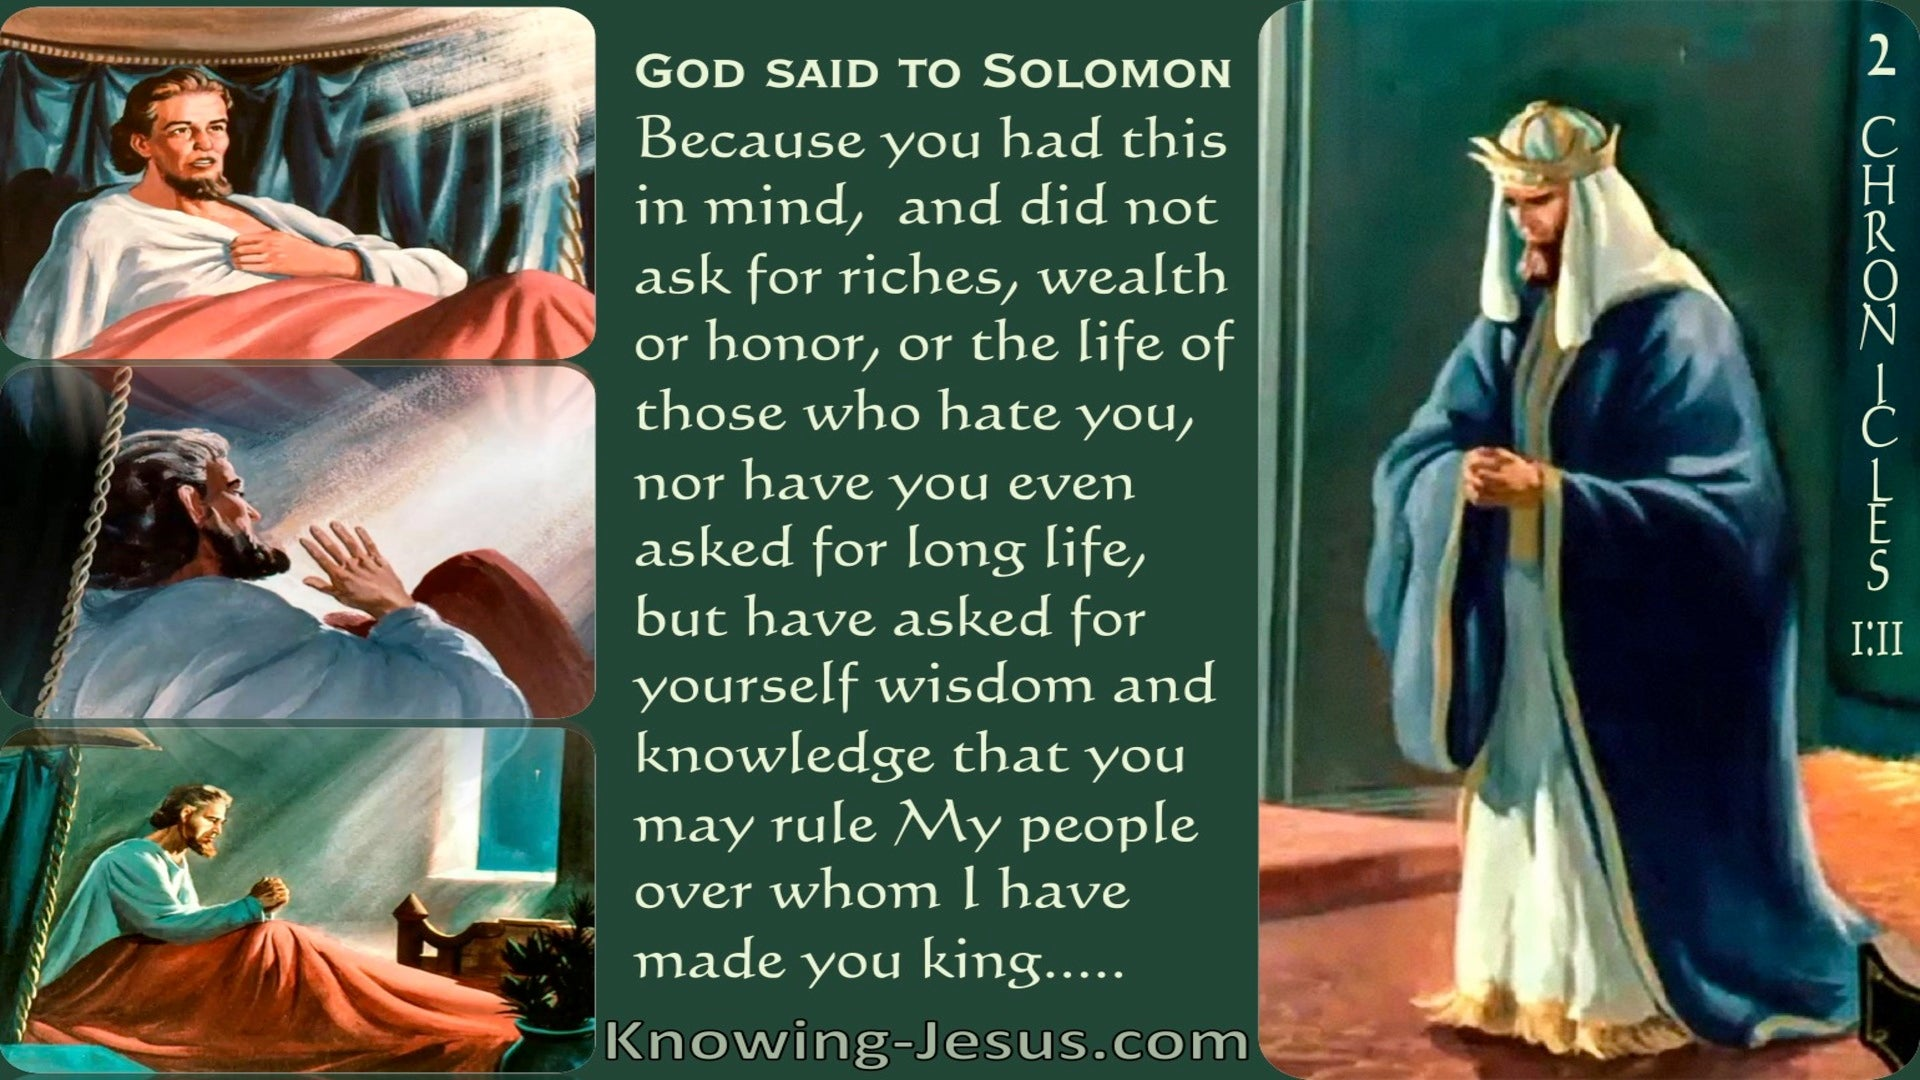 2 Chronicles 1:11 God Spoke To Solomon (green)